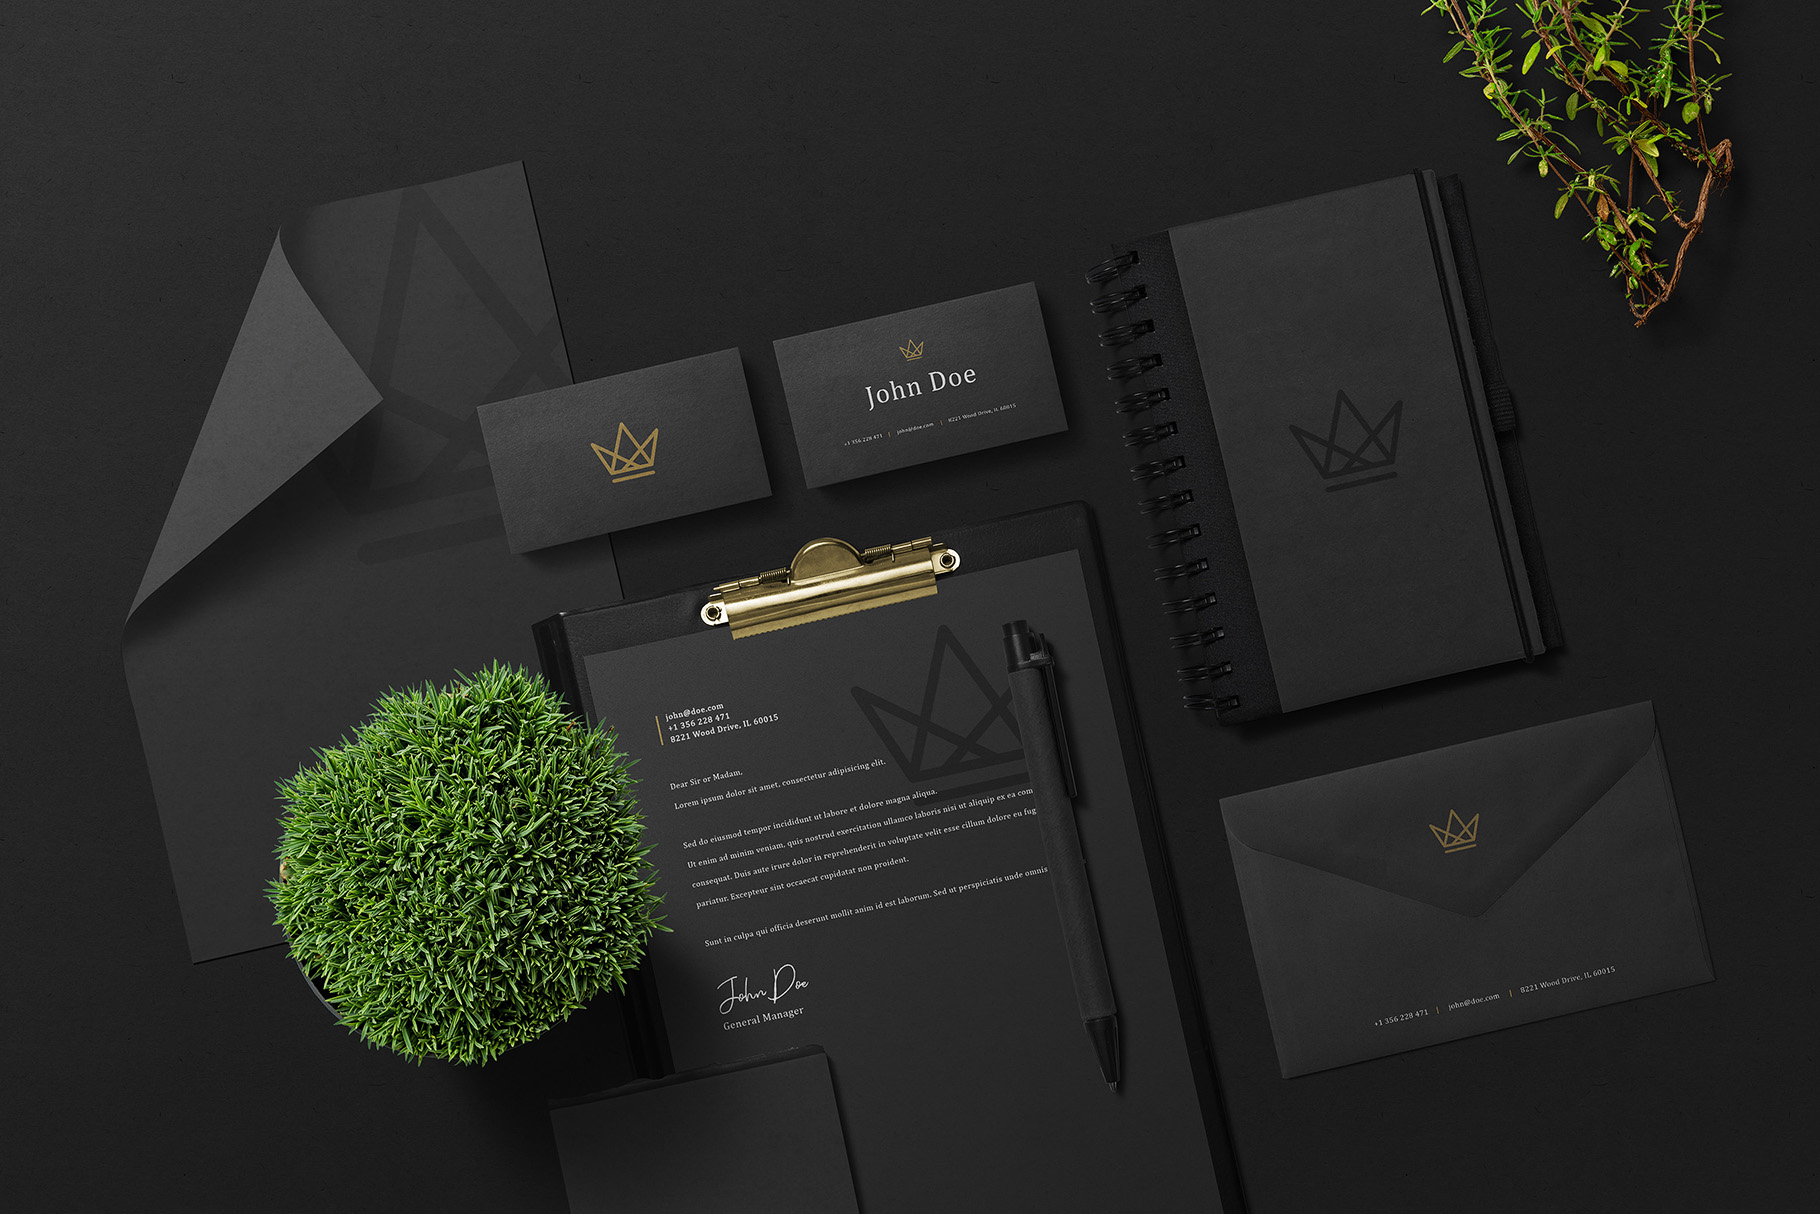 Black Branding Mockups Vol.2 example image 10